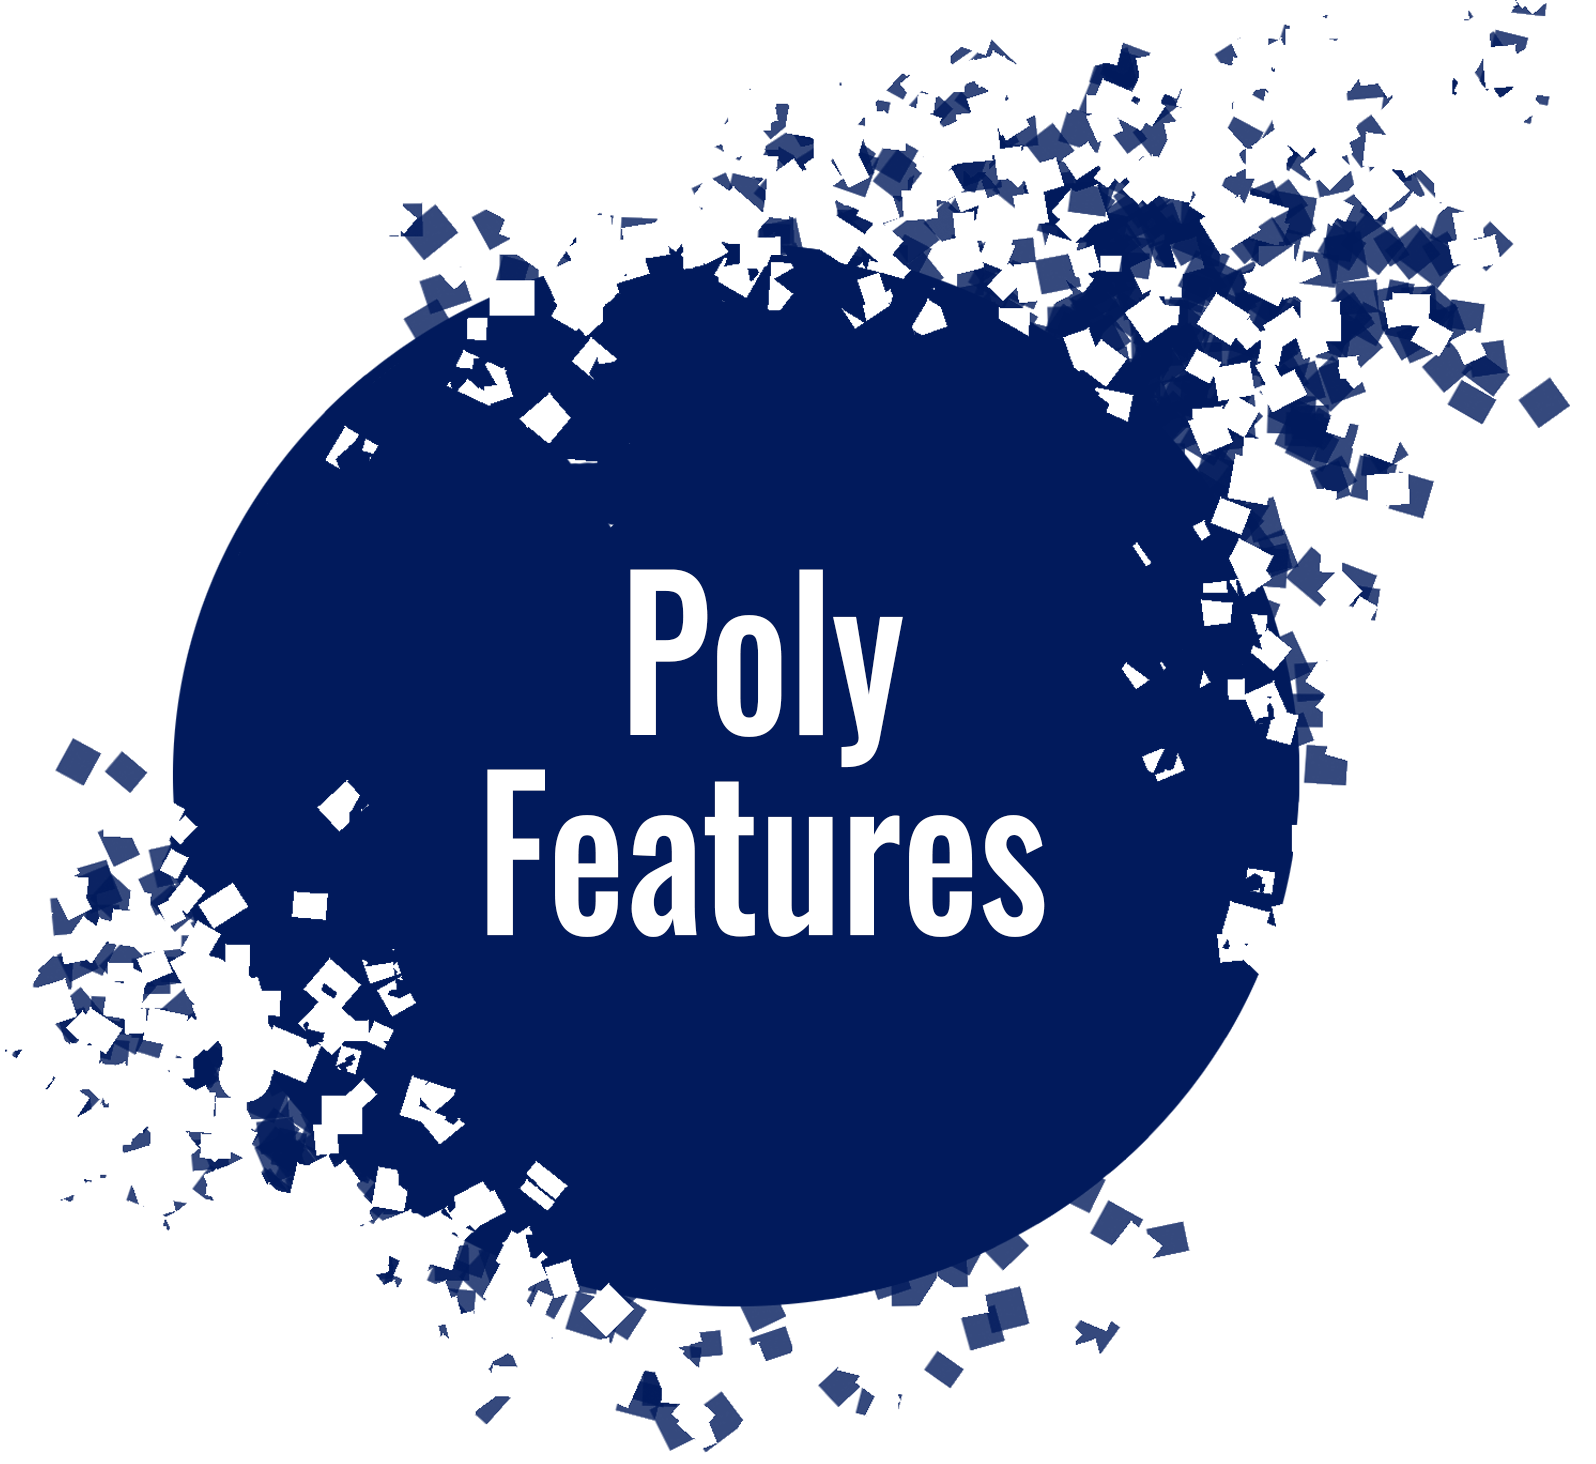 Poly Features circle